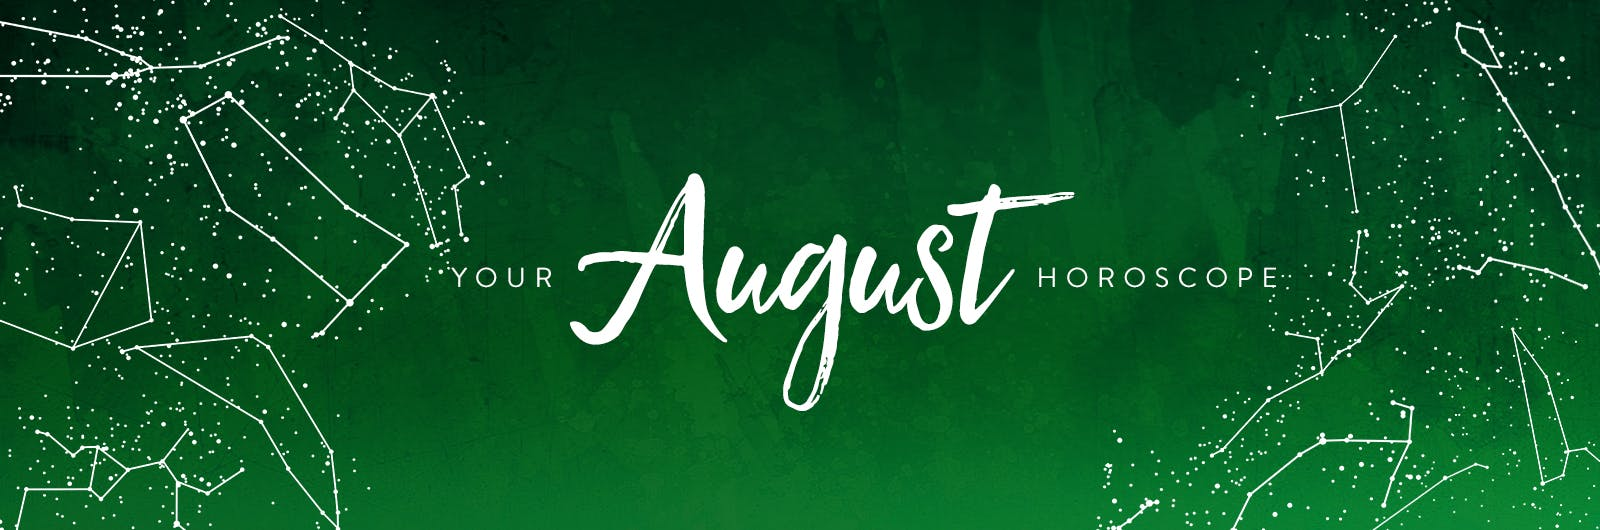 August Main Horoscope Header Web